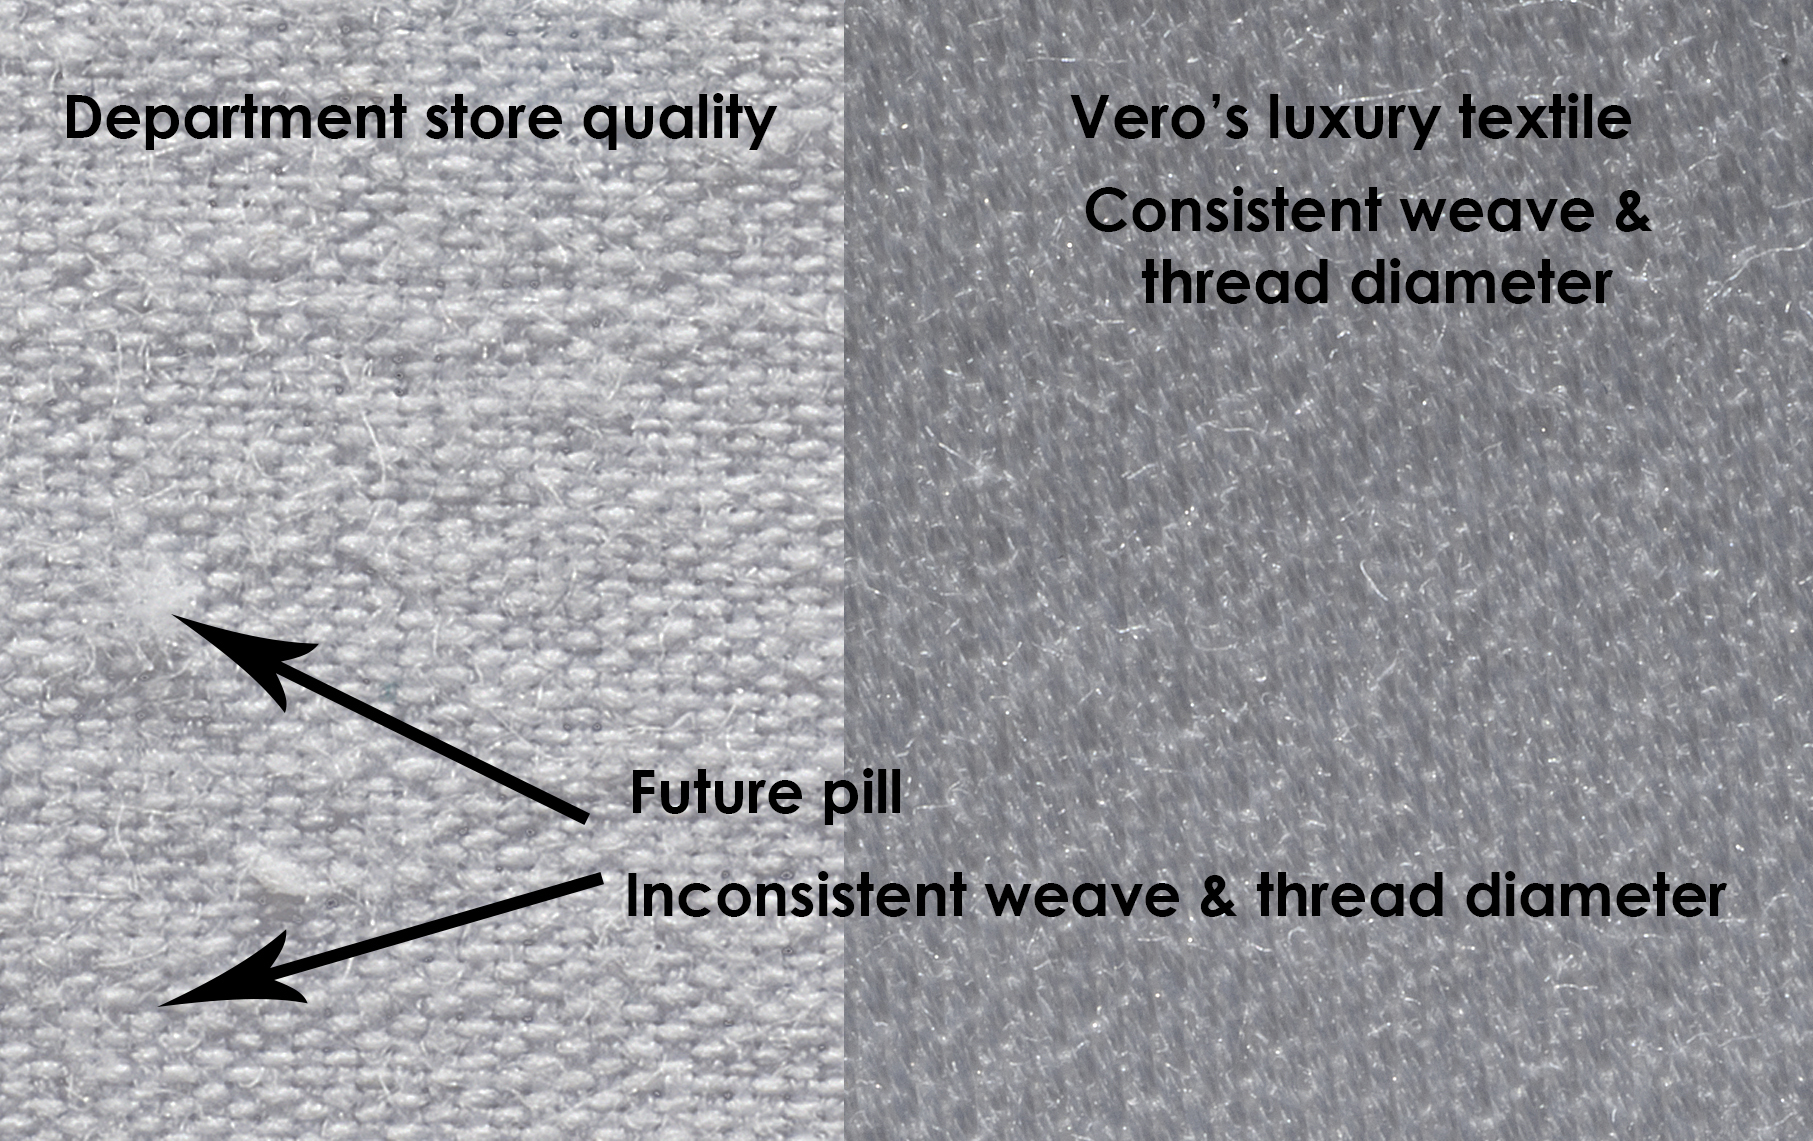 You can see the difference between department store linens & fine luxury bed linens